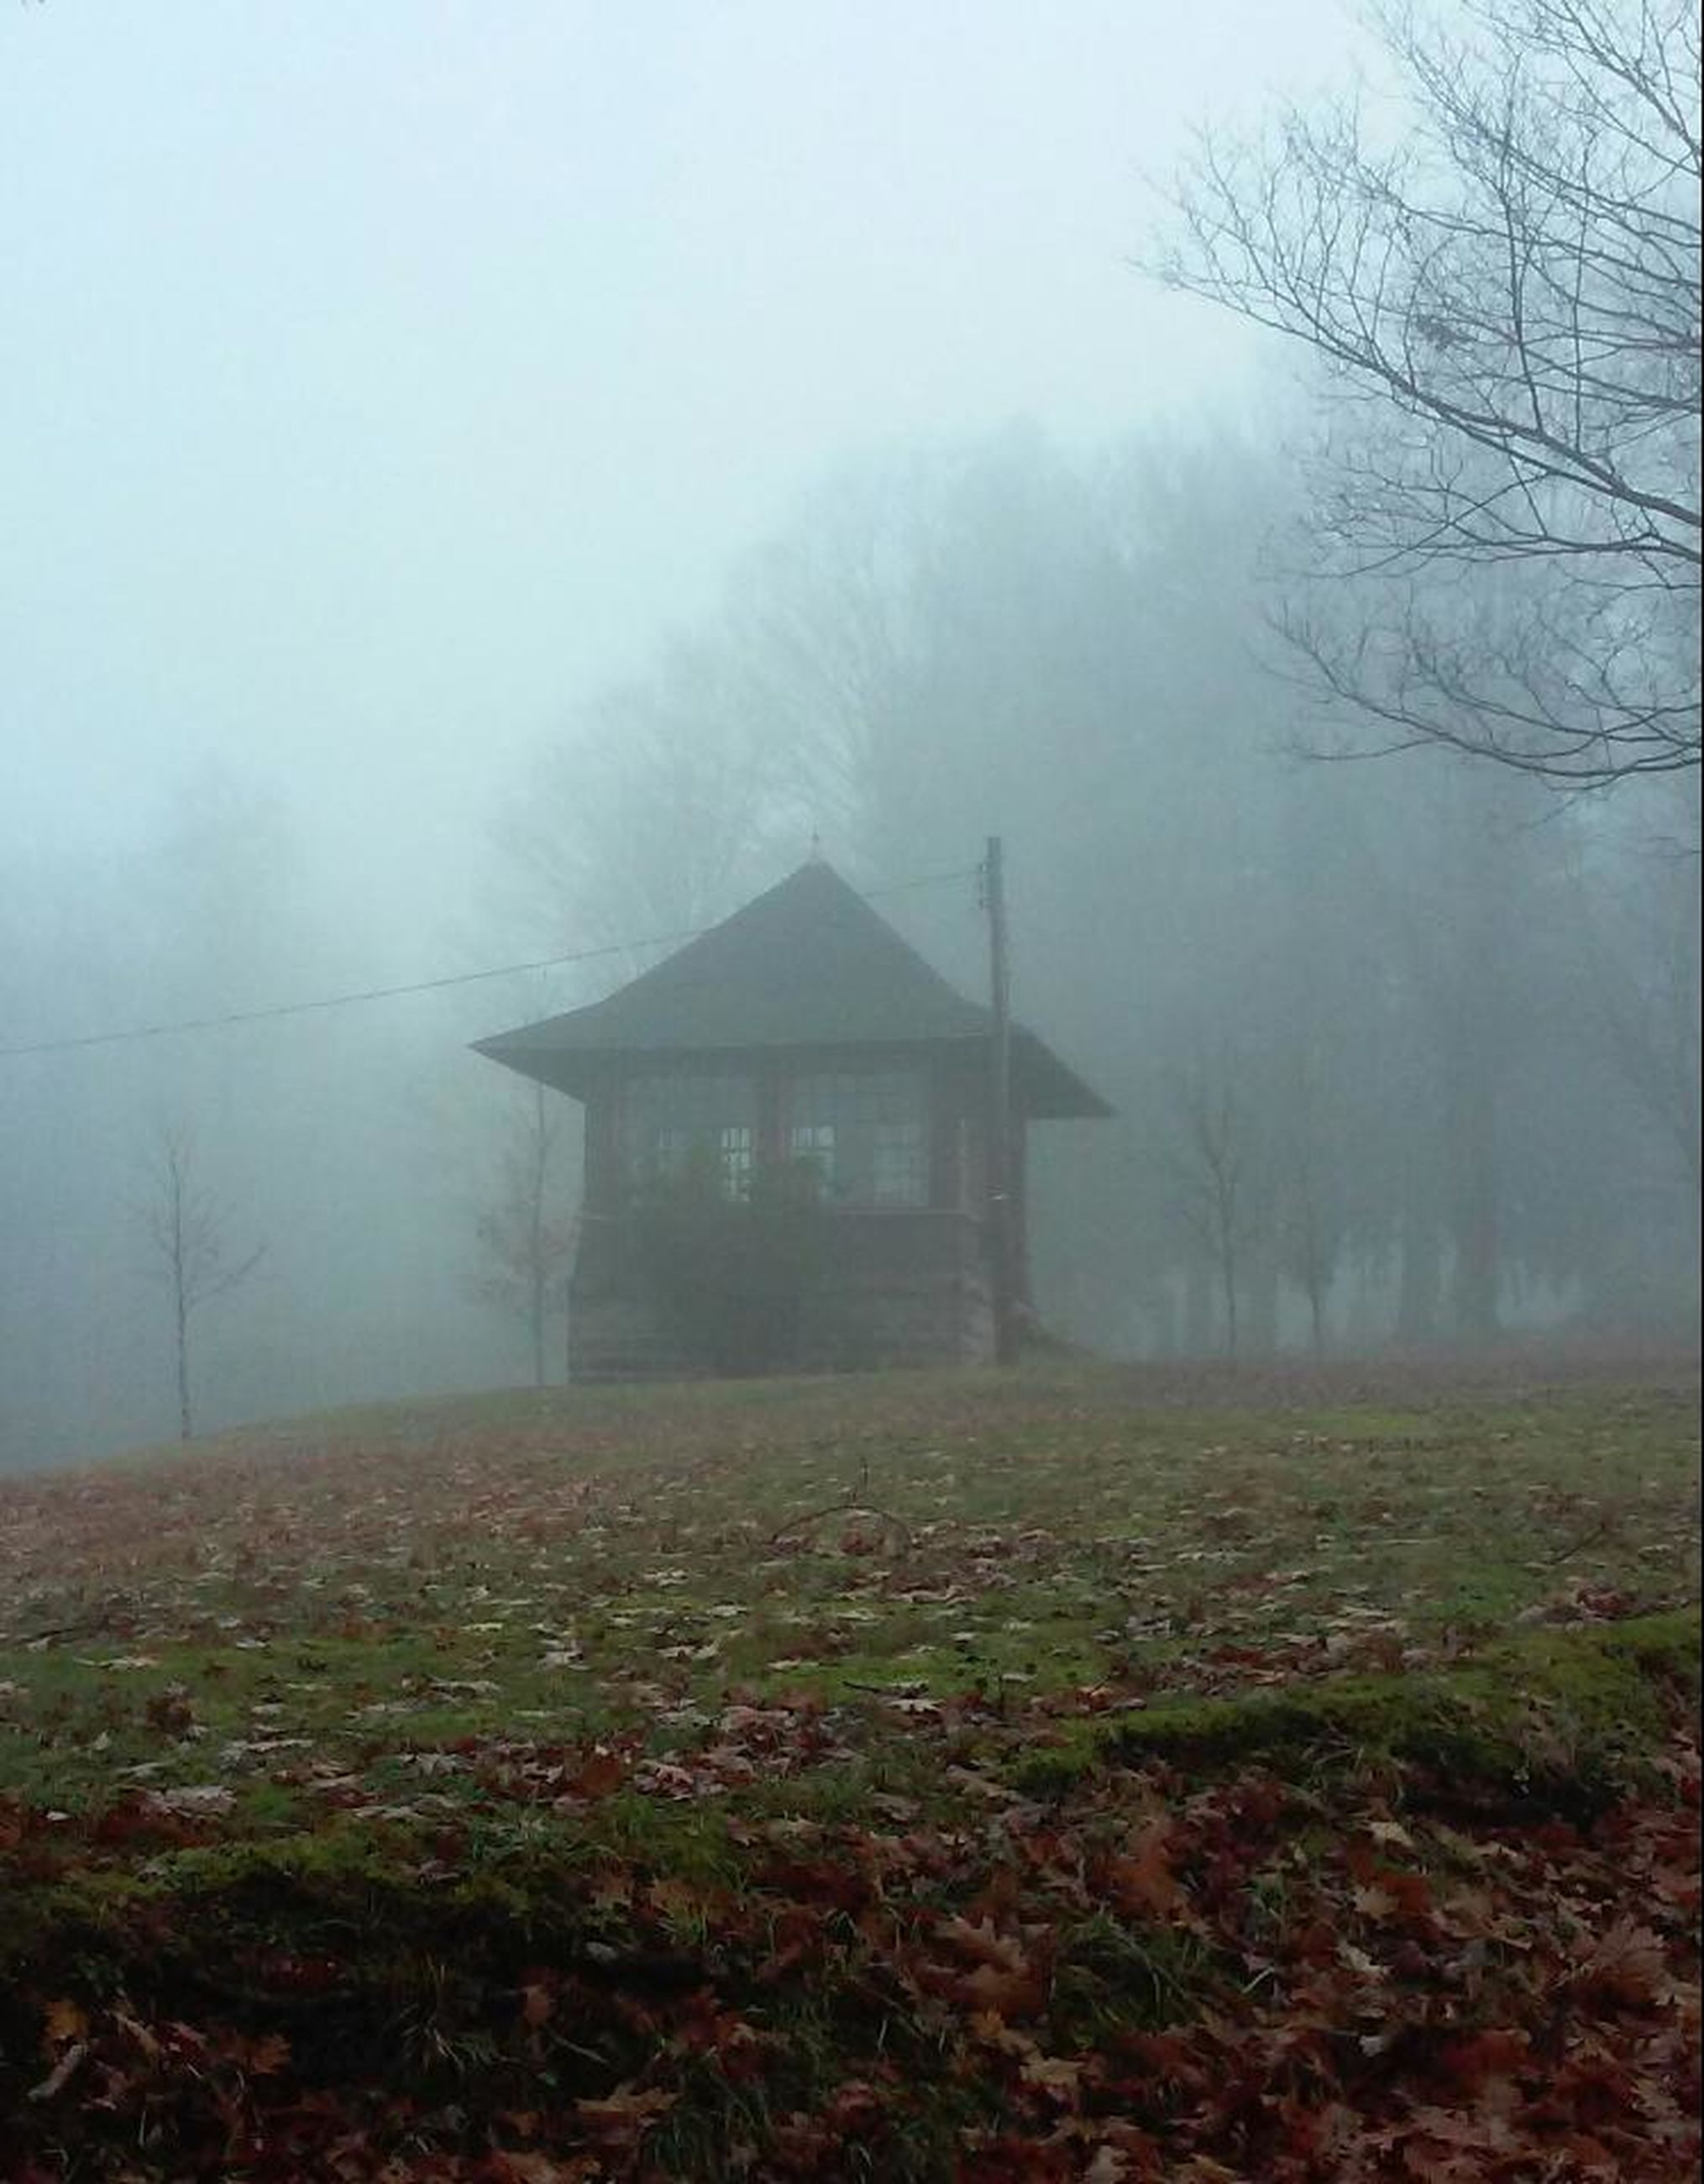 fog, nature, tranquility, scenics, winter, landscape, no people, tree, agriculture, outdoors, beauty in nature, mountain, day